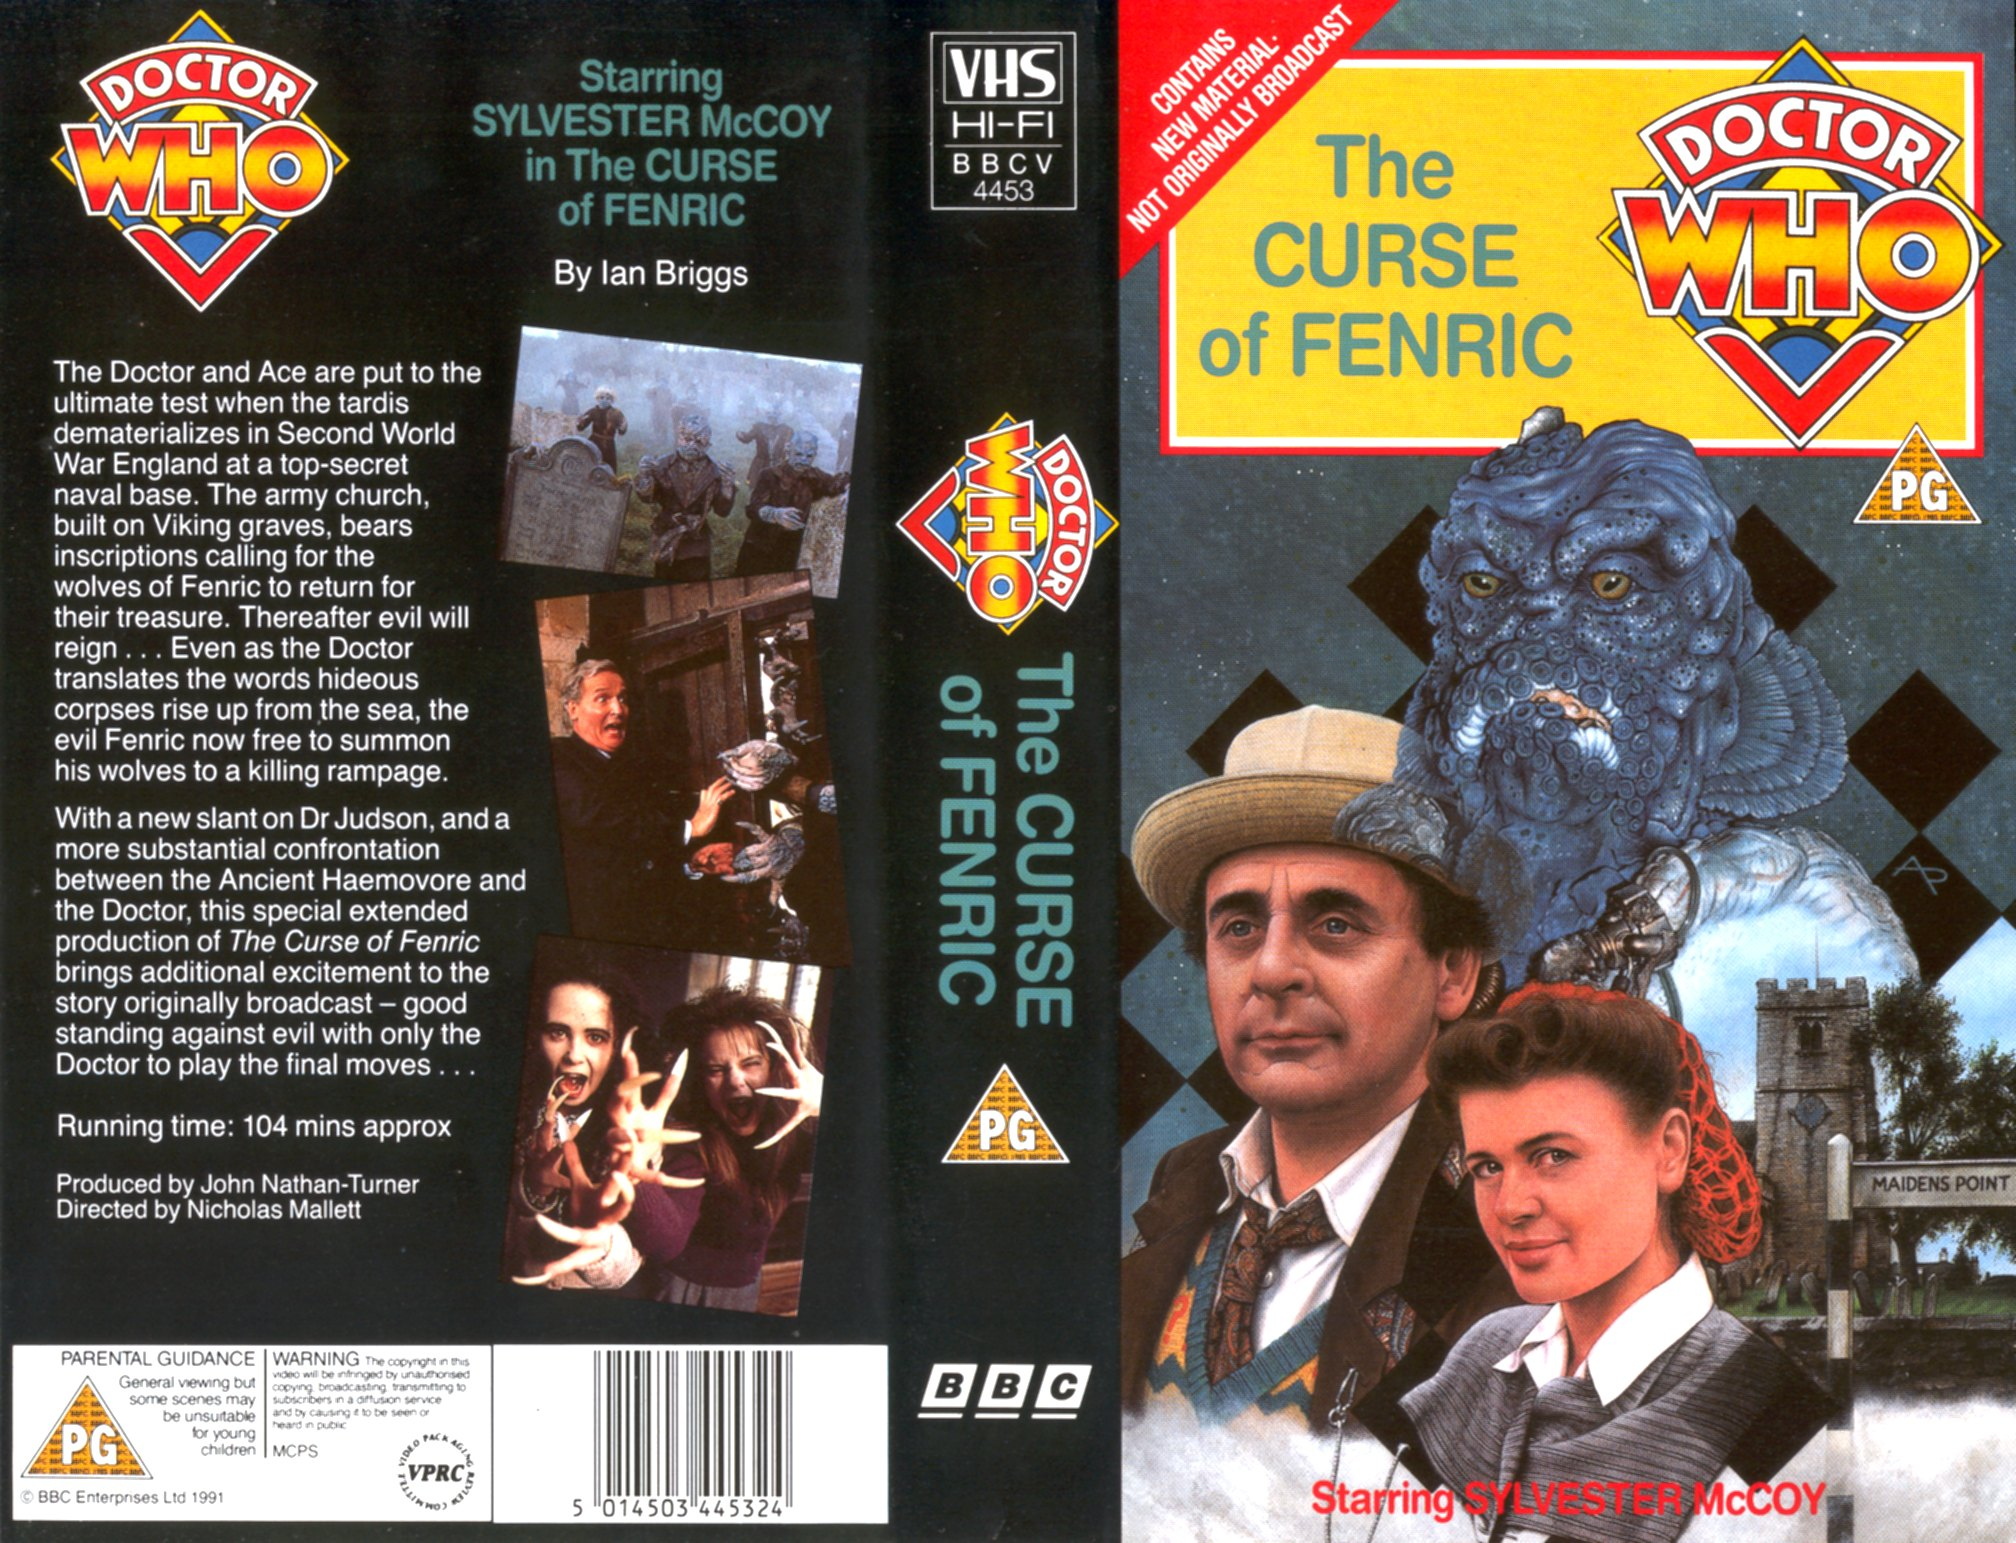 The Curse of Fenric VHS